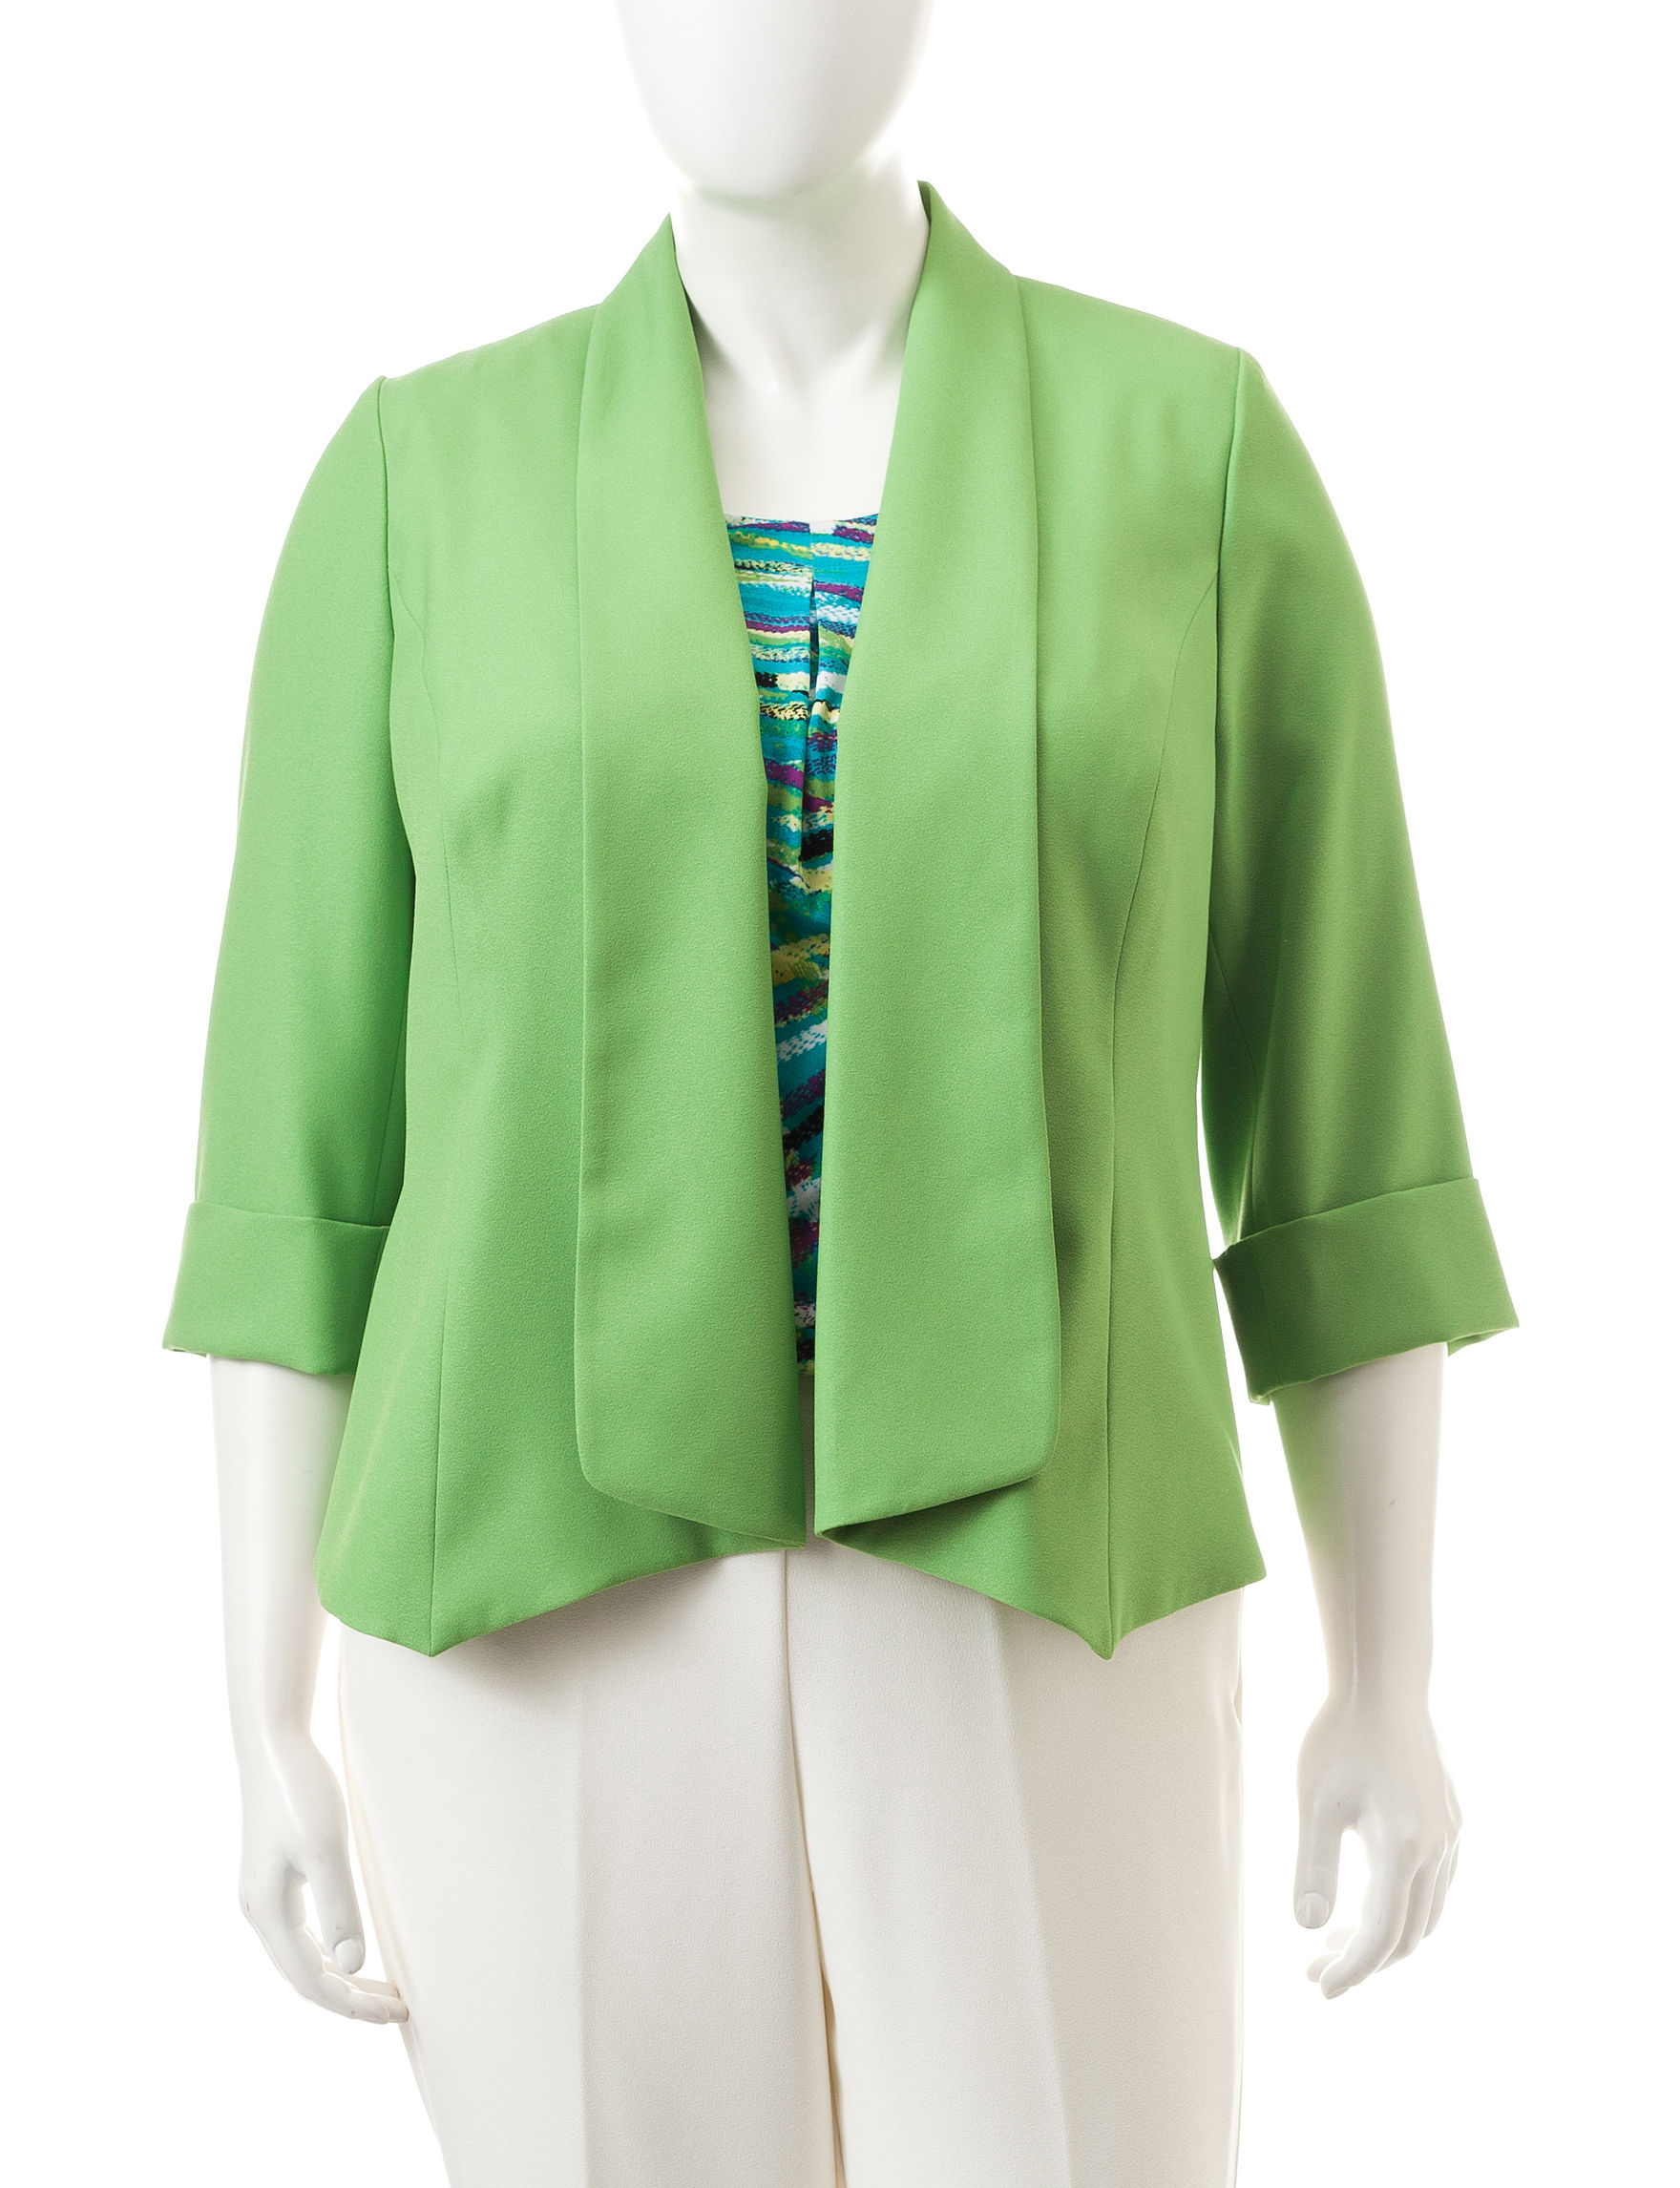 Kasper Green Lightweight Jackets & Blazers